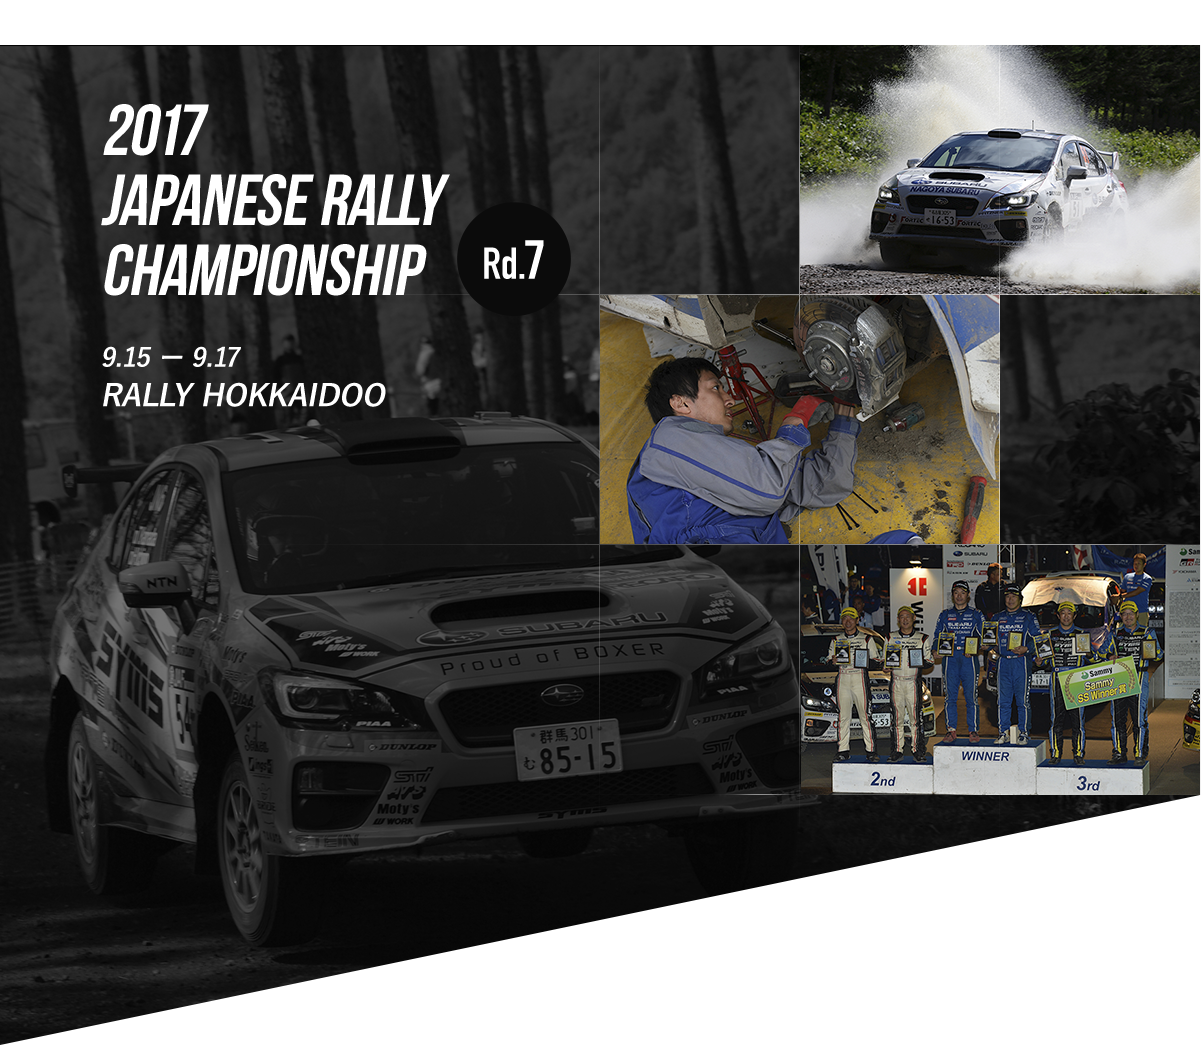 2017 JAPANESE RALLY CHAMPIONSHIP Rd.7 9.15-17 RALLY HOKKAIDO Supported by Sammy